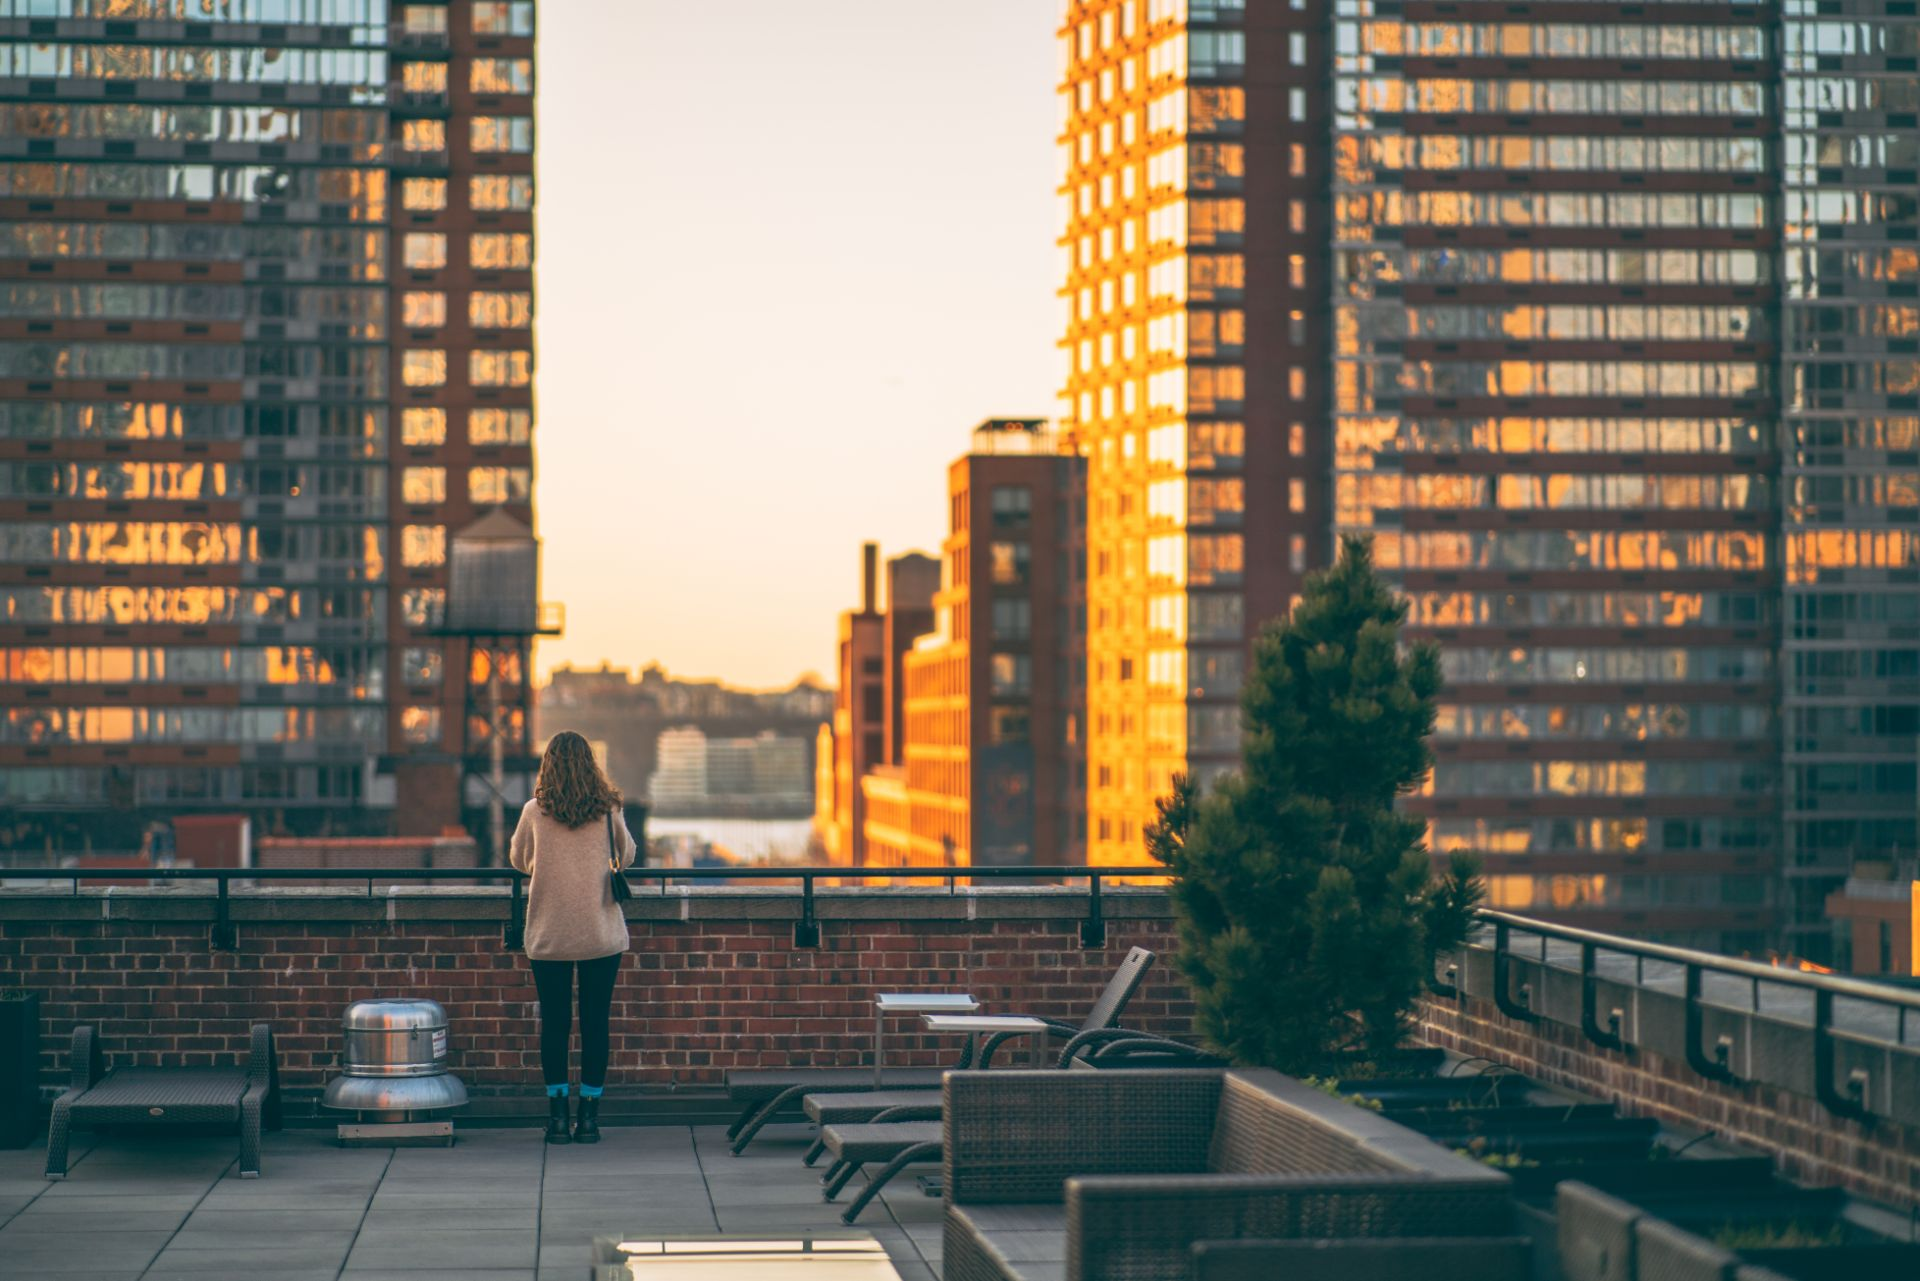 girl-stood-on-apartment-rooftop-in-new-york-city-at-sunset-looking-out-across-the-buildings